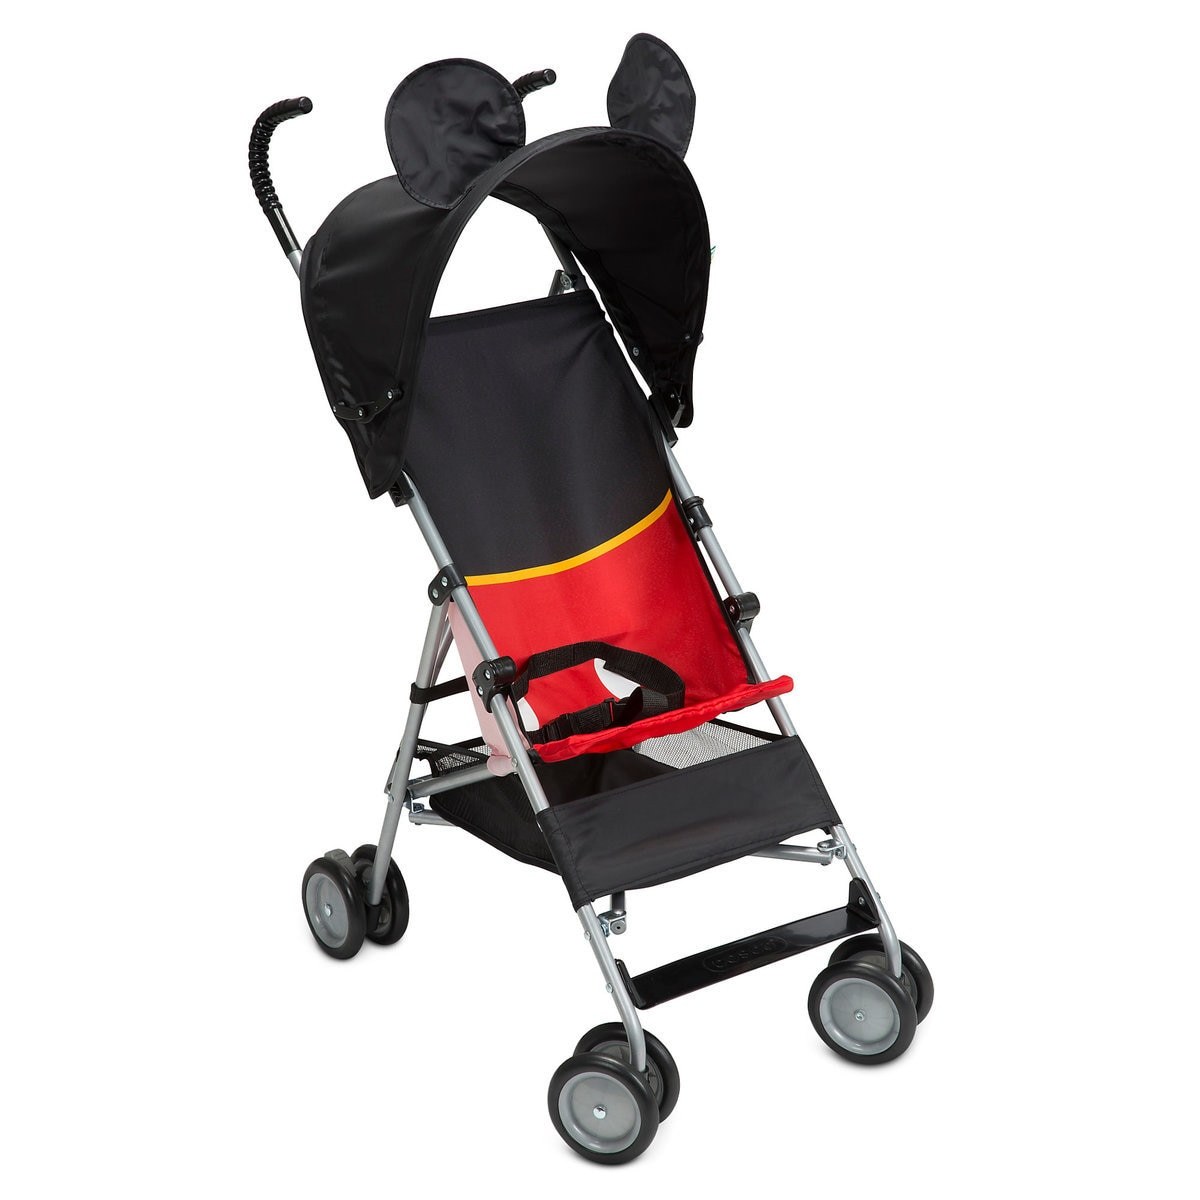 c6c22a8262775 Product Image of Mickey Mouse Umbrella Stroller # 1